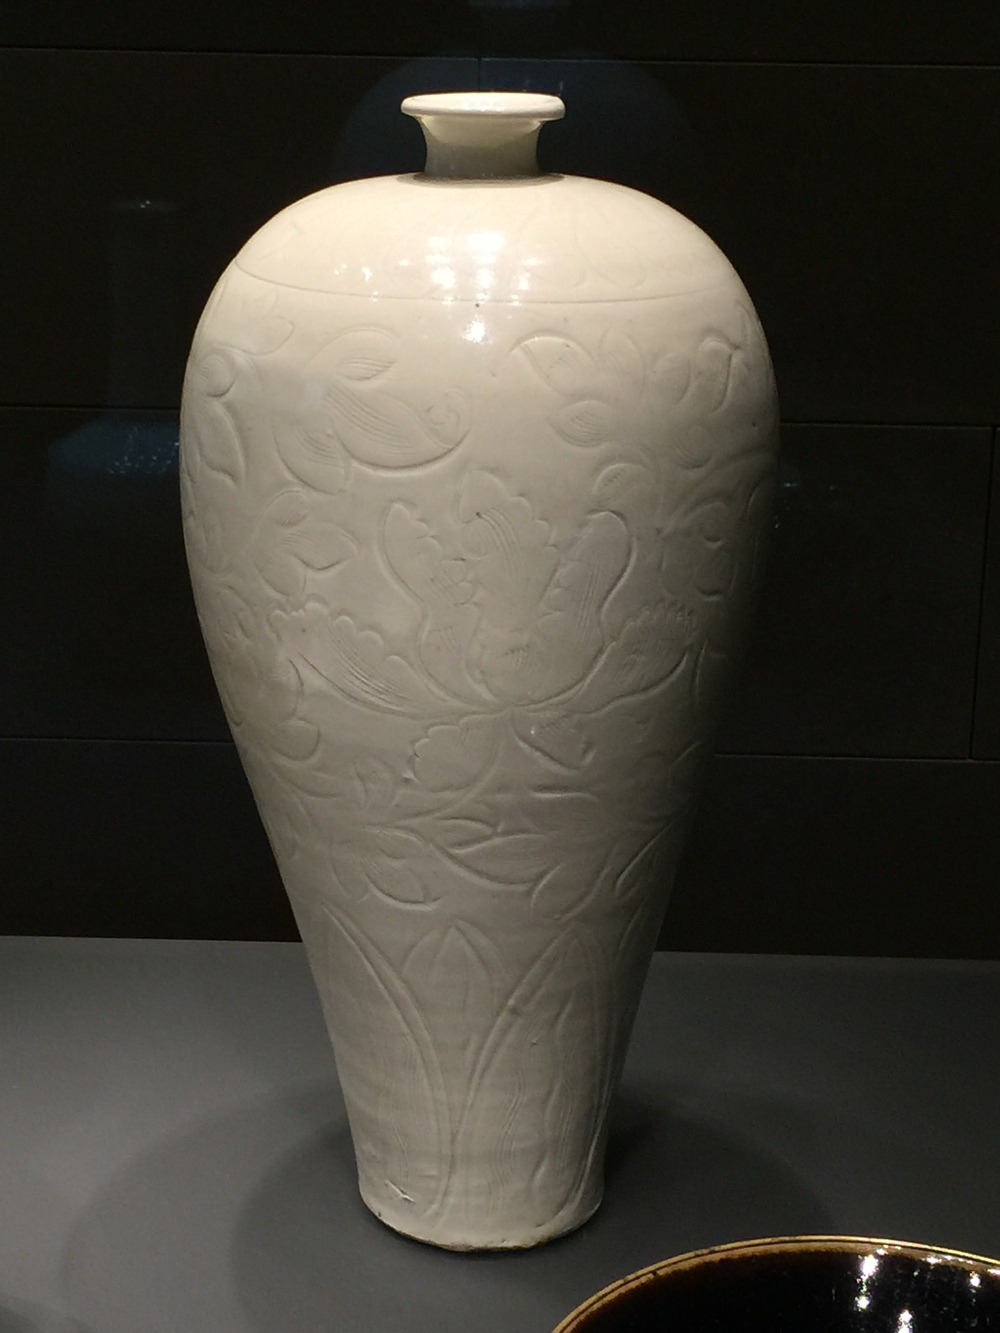 Chinese-Porcelain-British-Museum-Percival-David-jessewaugh.com-6.jpg